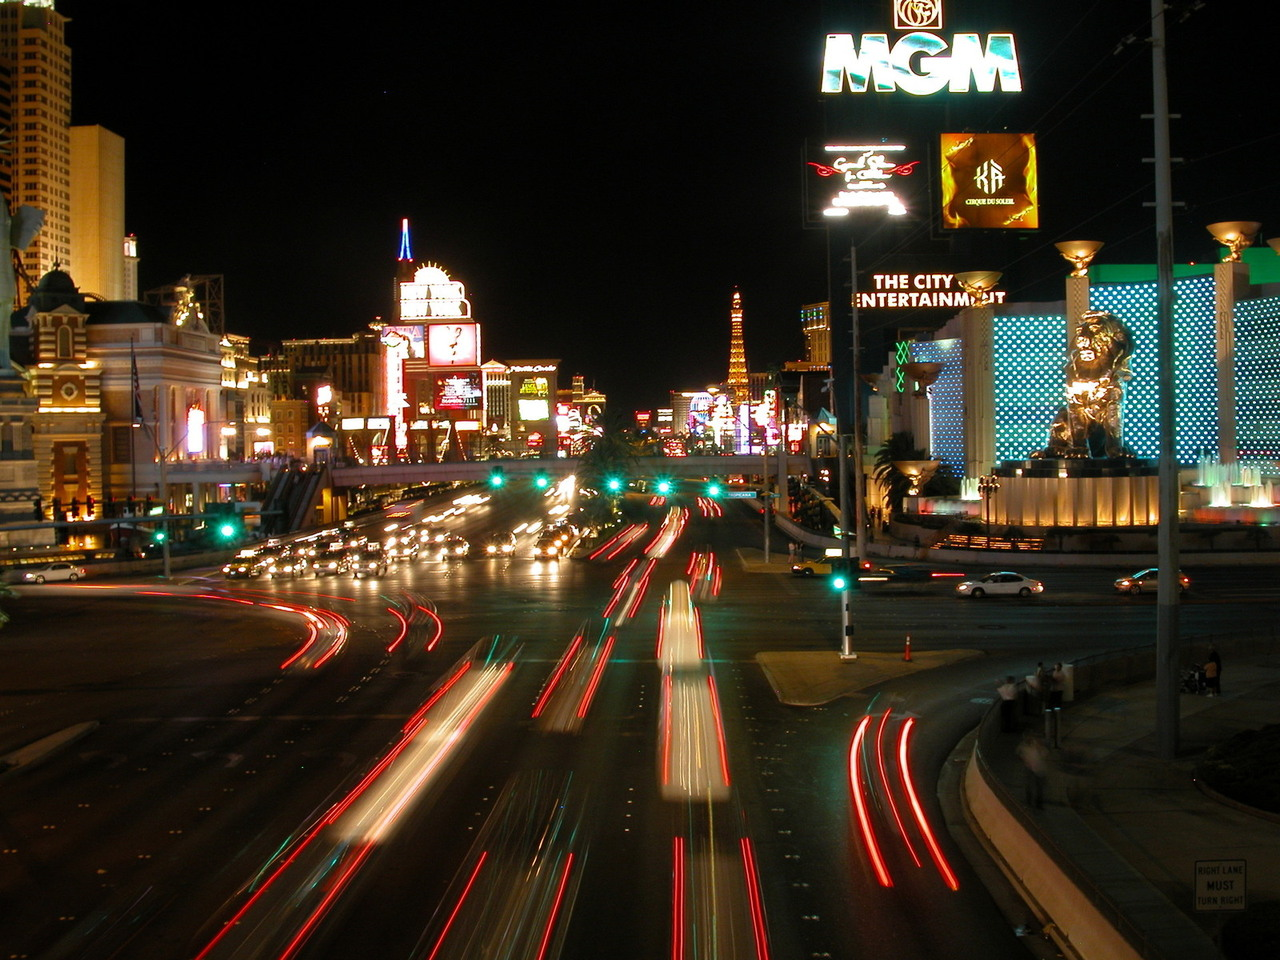 Las Vegas - Las Vegas probably doesn't need an introduction. However, the entertainment capital of the world isn't just about entertainment. We see a number of our clientele travel down here for business just as much as pleasure. Although Las Vegas is known for all of its downtown entertainment that attracts tens of millions of tourists every year, there are still over 2 million people residing and living in Vegas. Our Hawker 800XP can fly you and your family/friends to Vegas from whatever airport you prefer, and at whatever time you'd like.